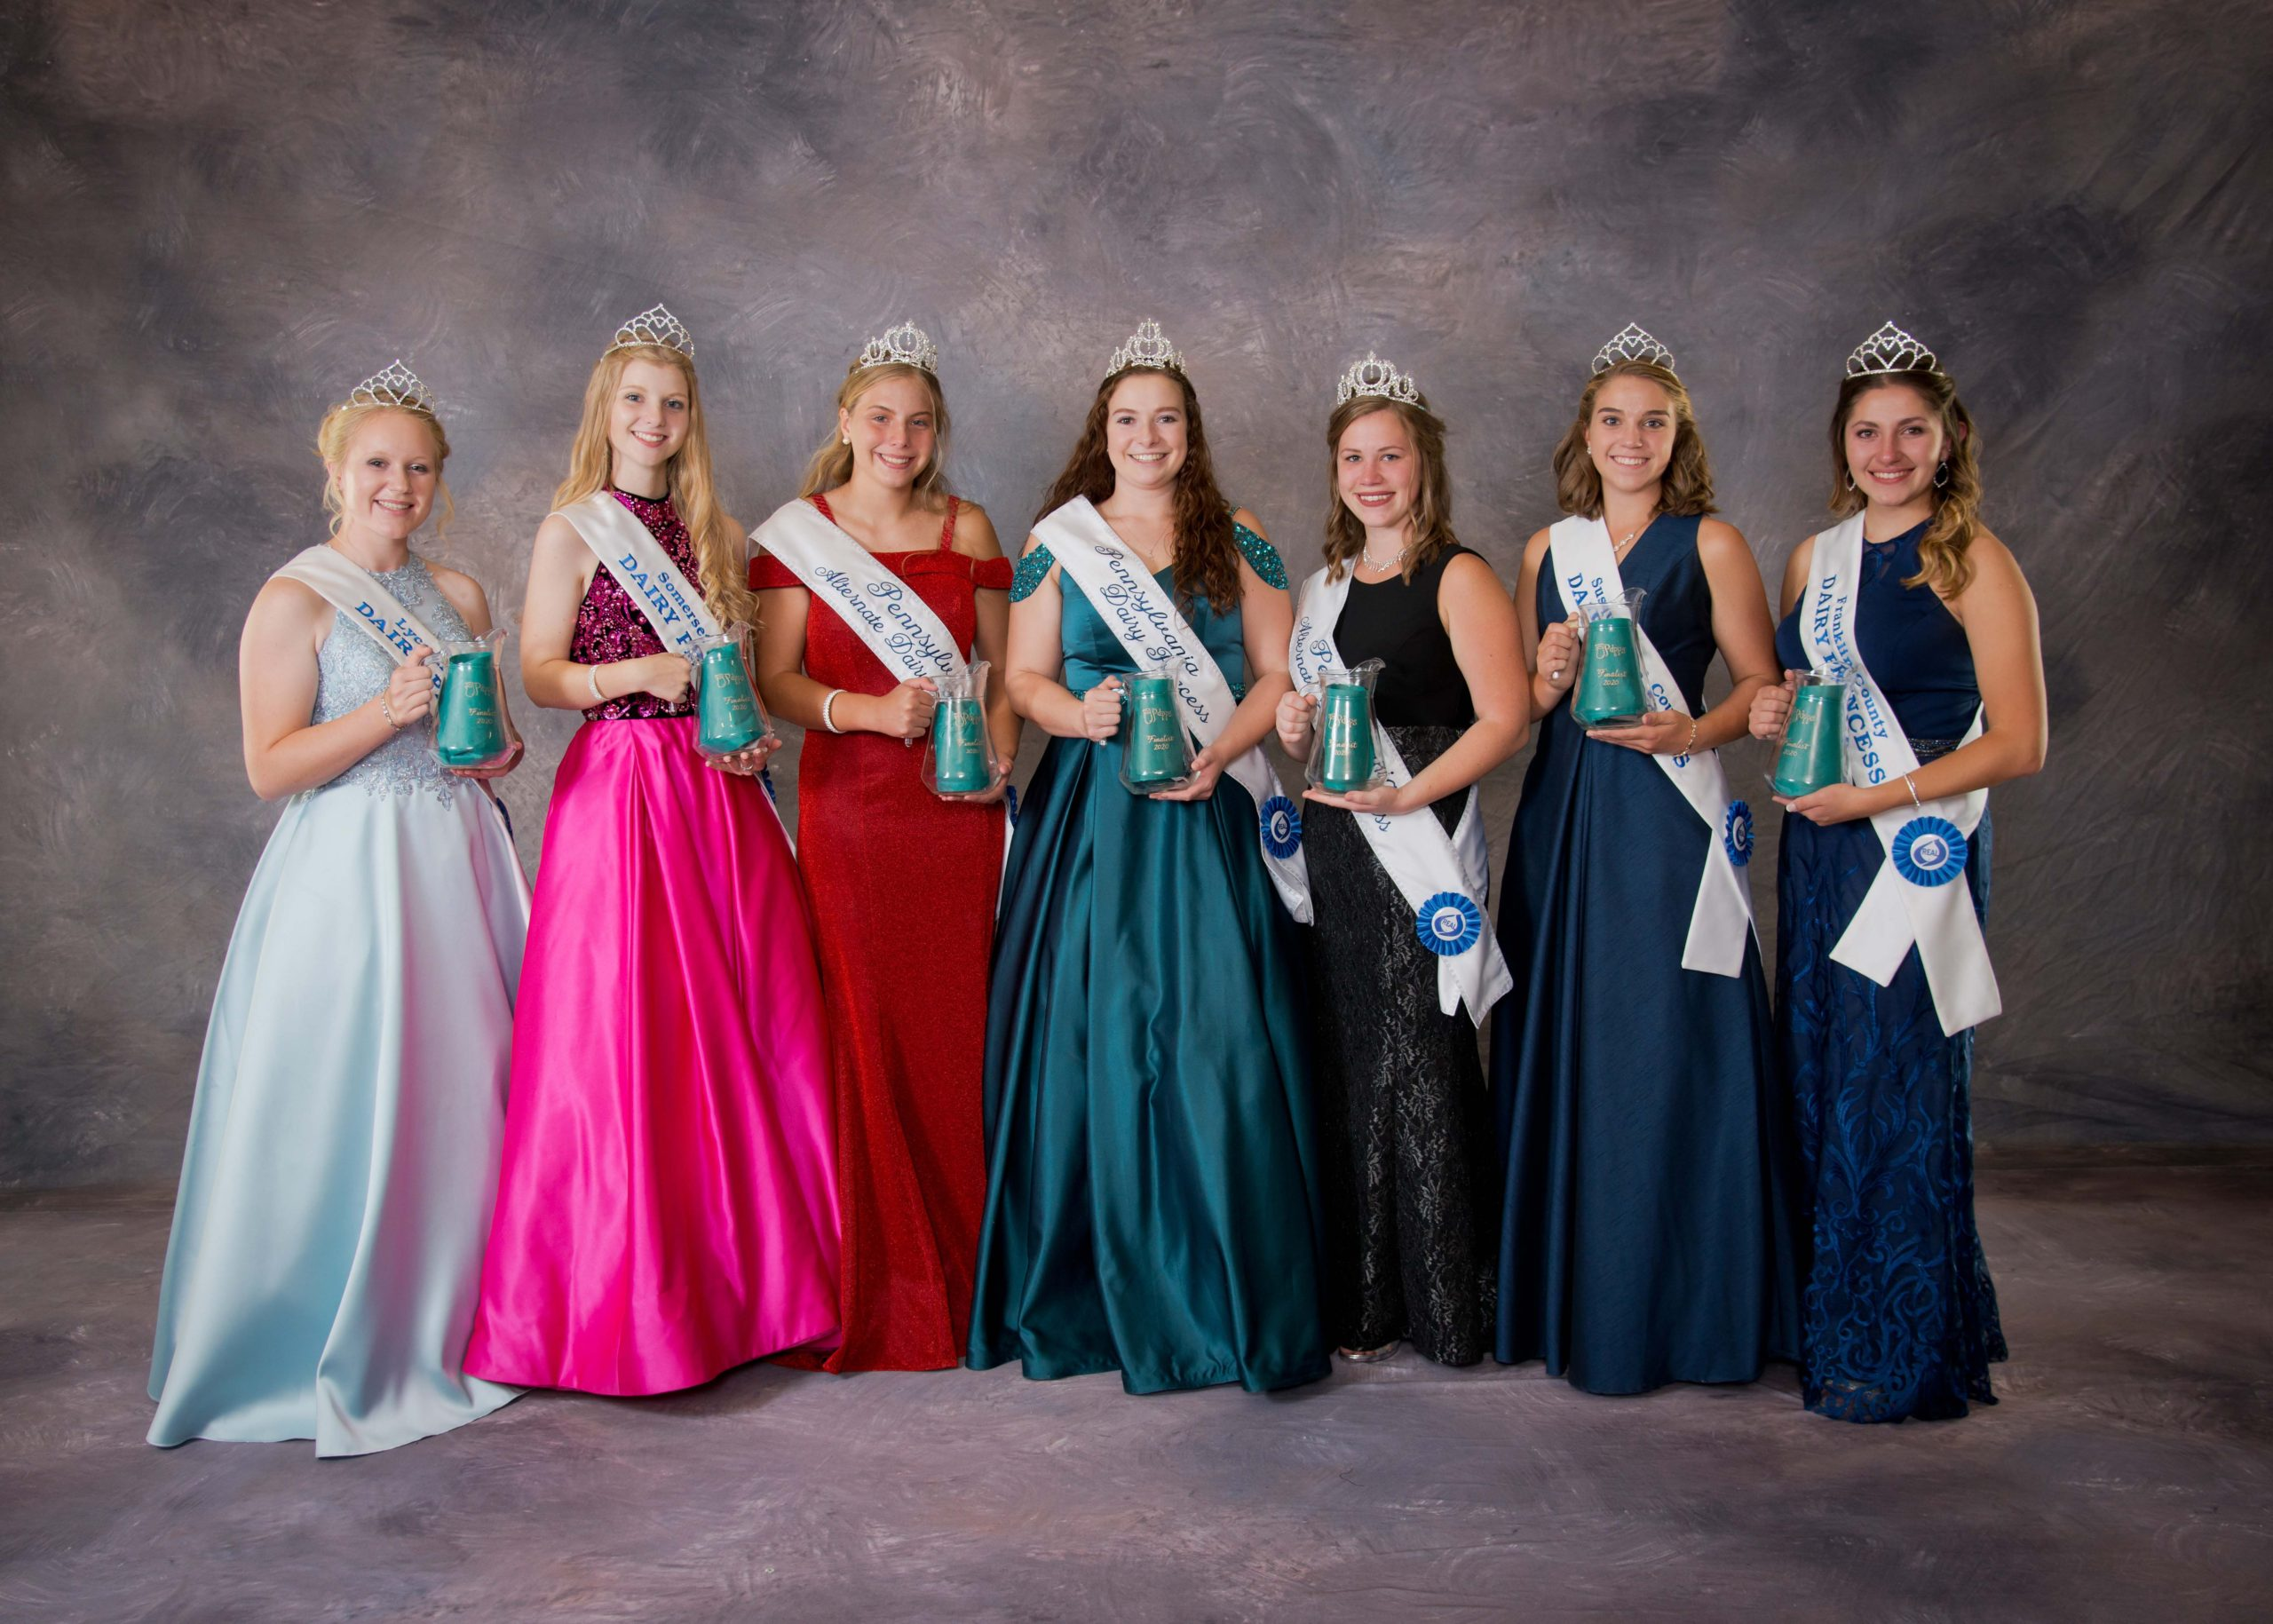 Meet the newly crowned 15 states winners for Miss America